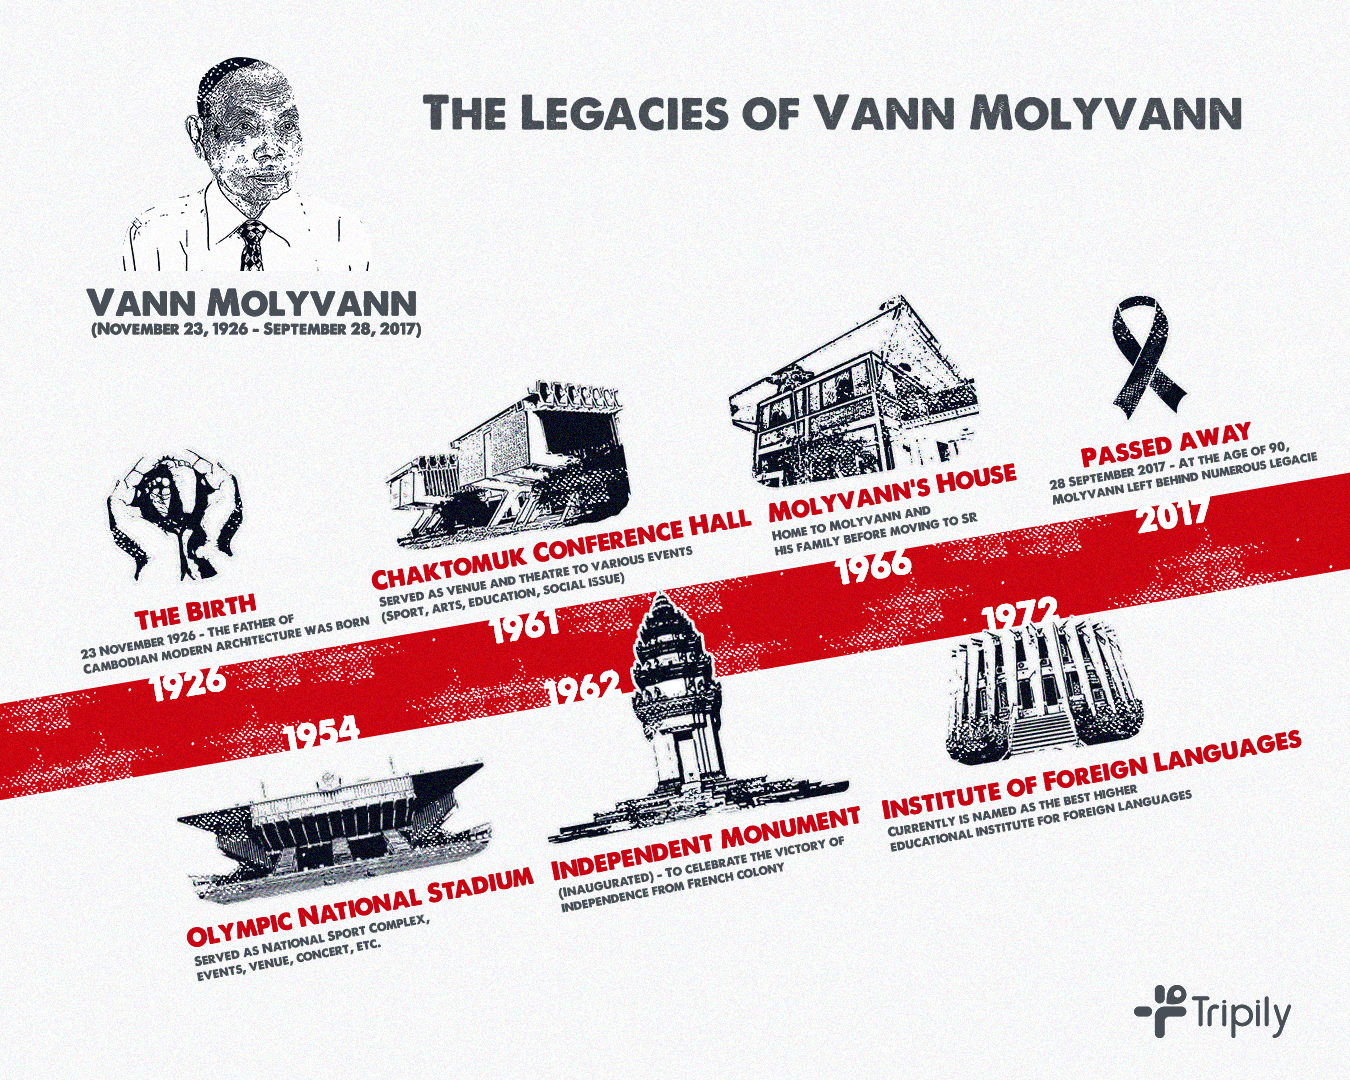 The Legacies of Vann Molyvann